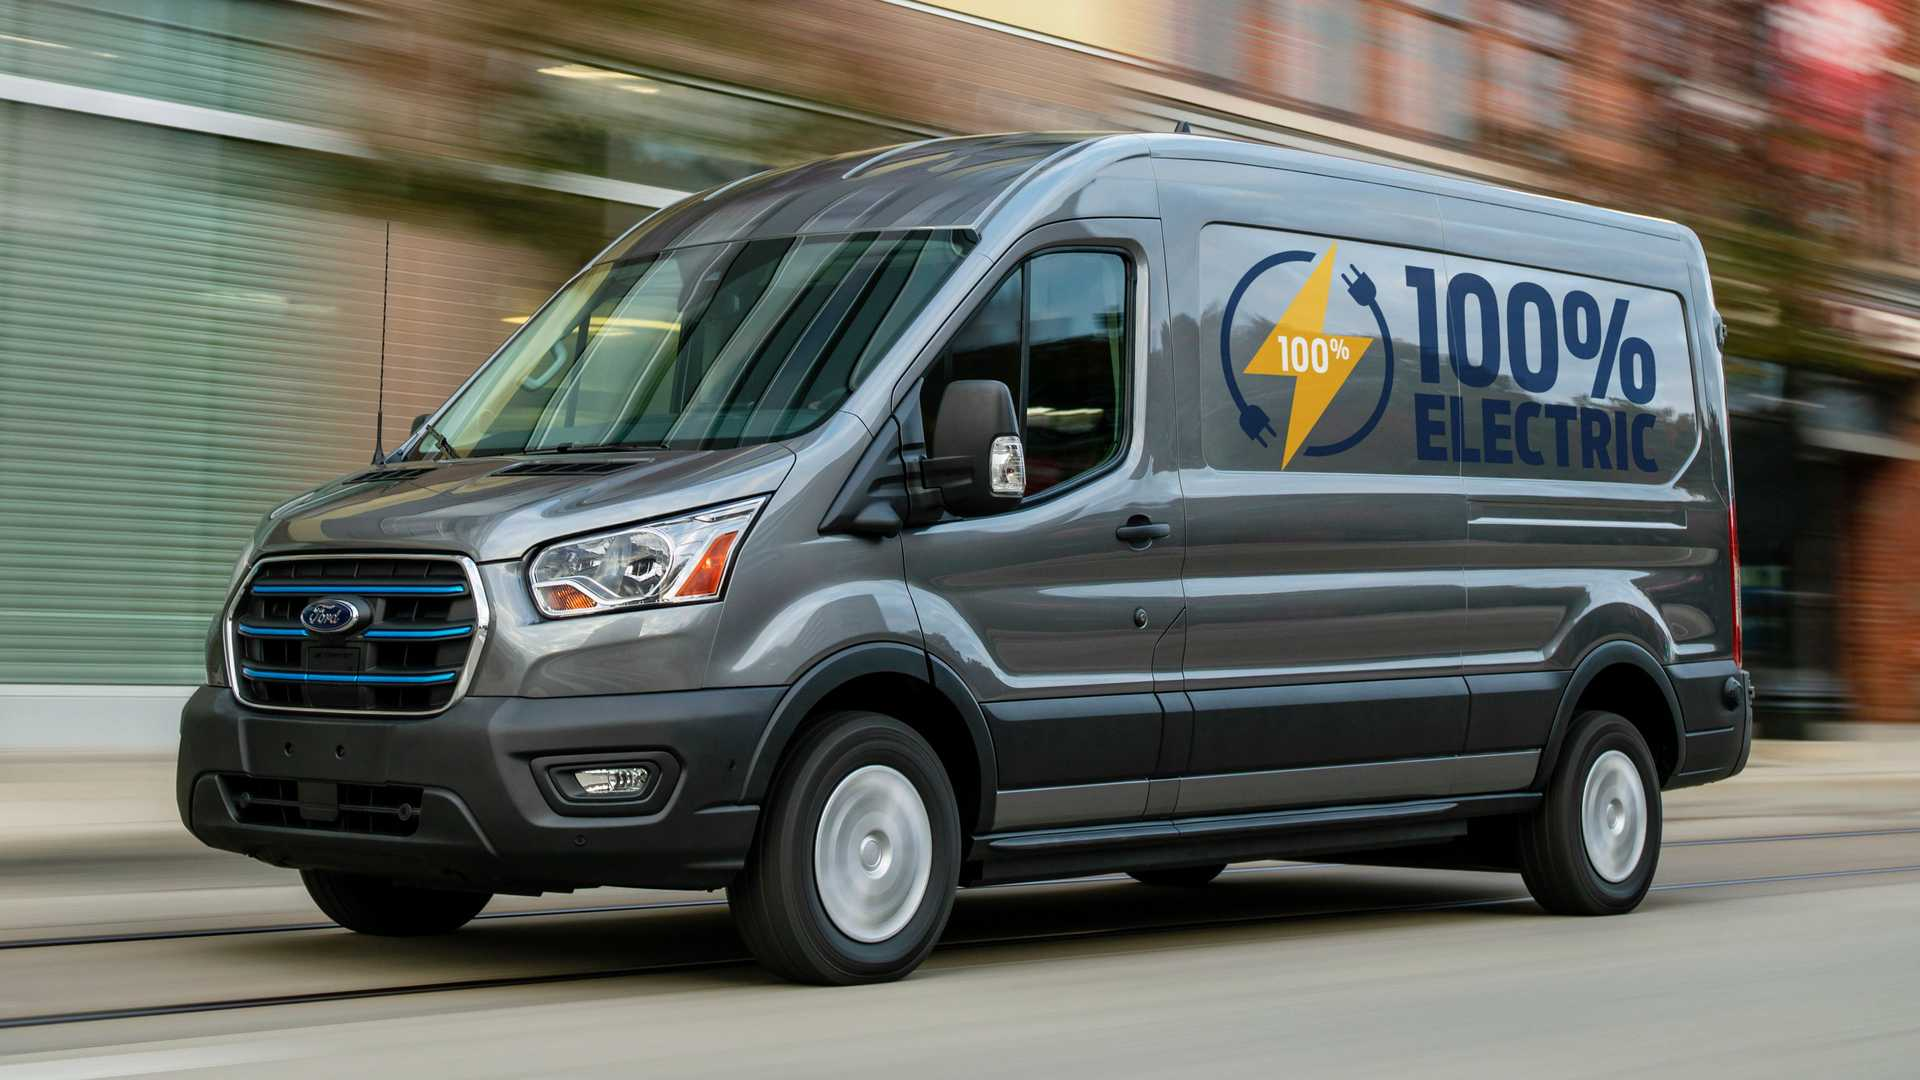 2022 Ford E-Transit Debuts As Electric Van With 126 Miles Of Range